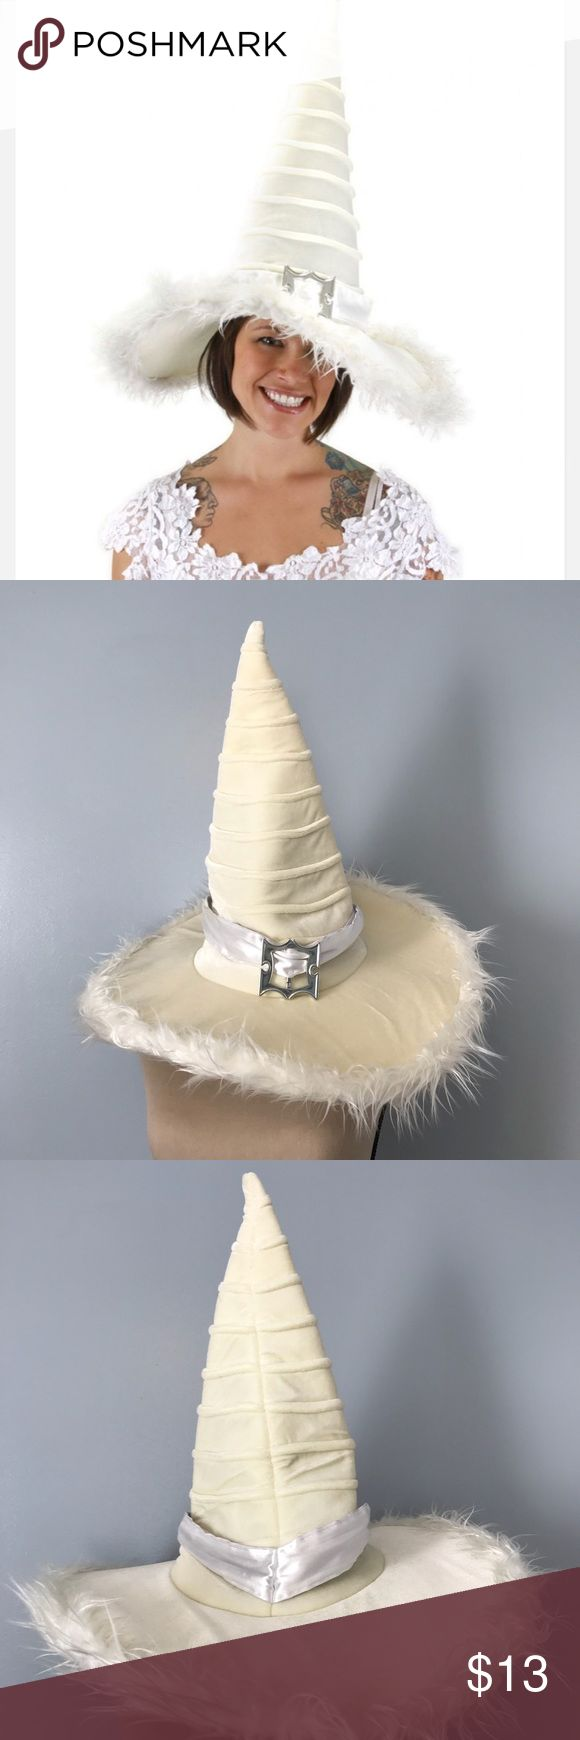 """Good Witch Plush Hat A white satin band and silver buckle on the outside and a hidden pocket inside keeps your most precious vials and charms safe. A wire brim and velcro size adjuster ensures a steady fit.  Approximate Specifications: • Item Packaged 25.5"""" x 19.5"""" x 1.5"""" • Sized for adults • An elope original product • Made with 75% Polyester/25% Cotton Elope Accessories Hats"""